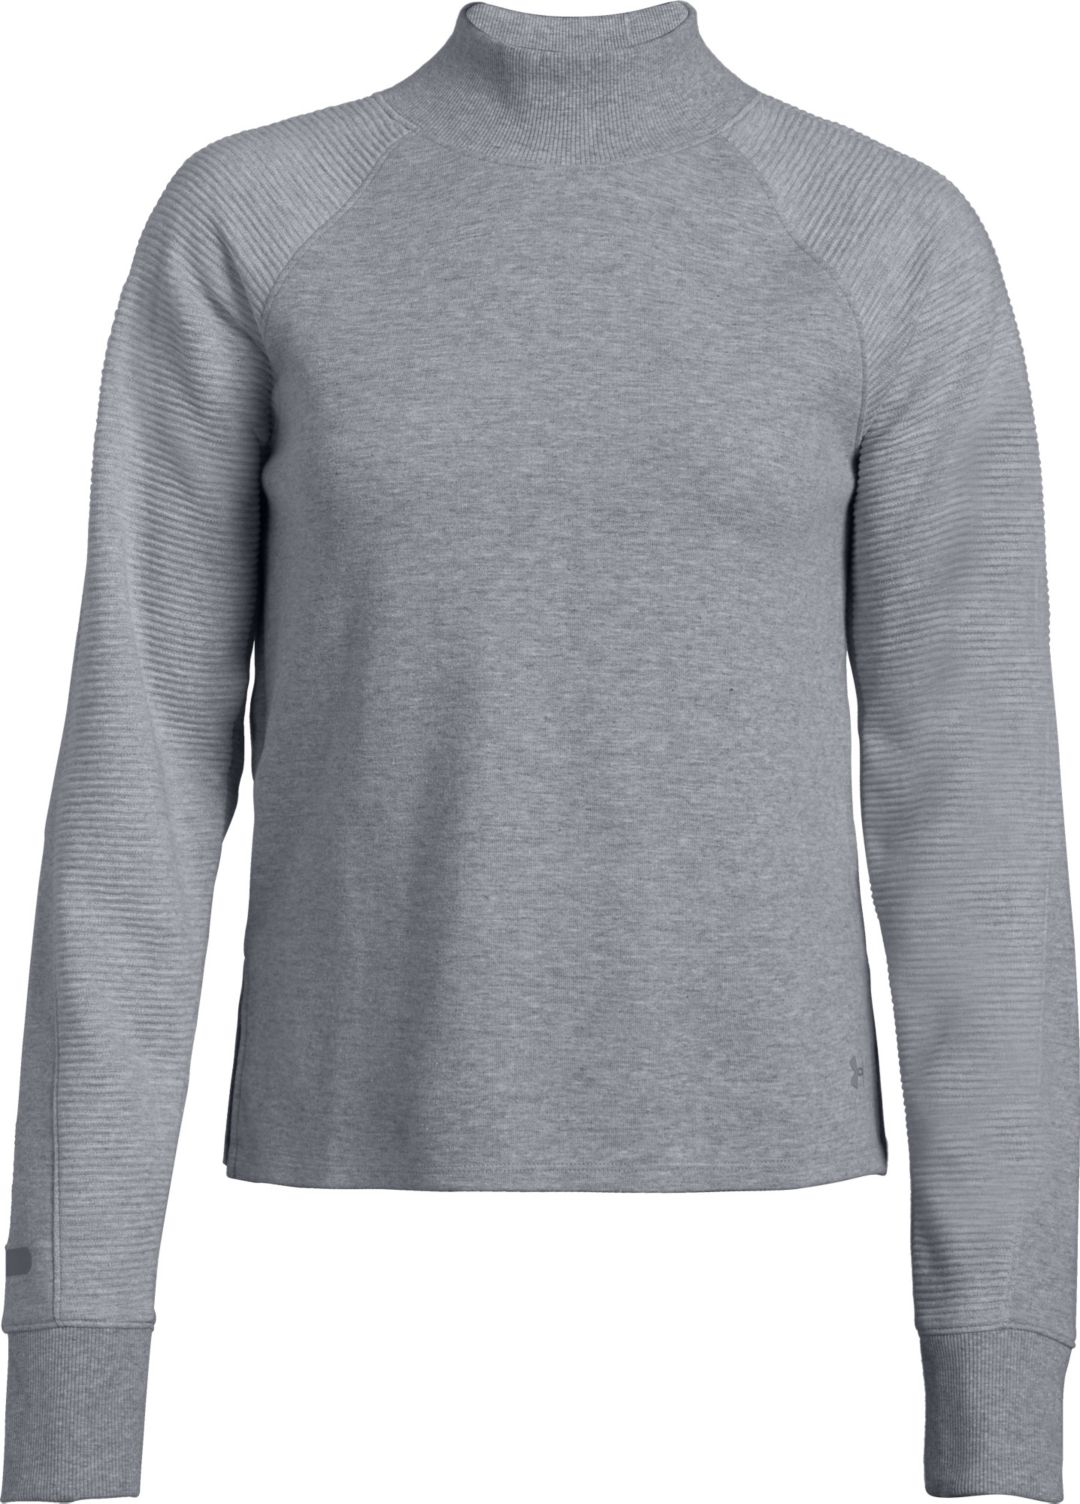 d7843f70 Under Armour Women's Unstoppable Double Knit Mock Neck Long Sleeve Shirt.  noImageFound. Previous